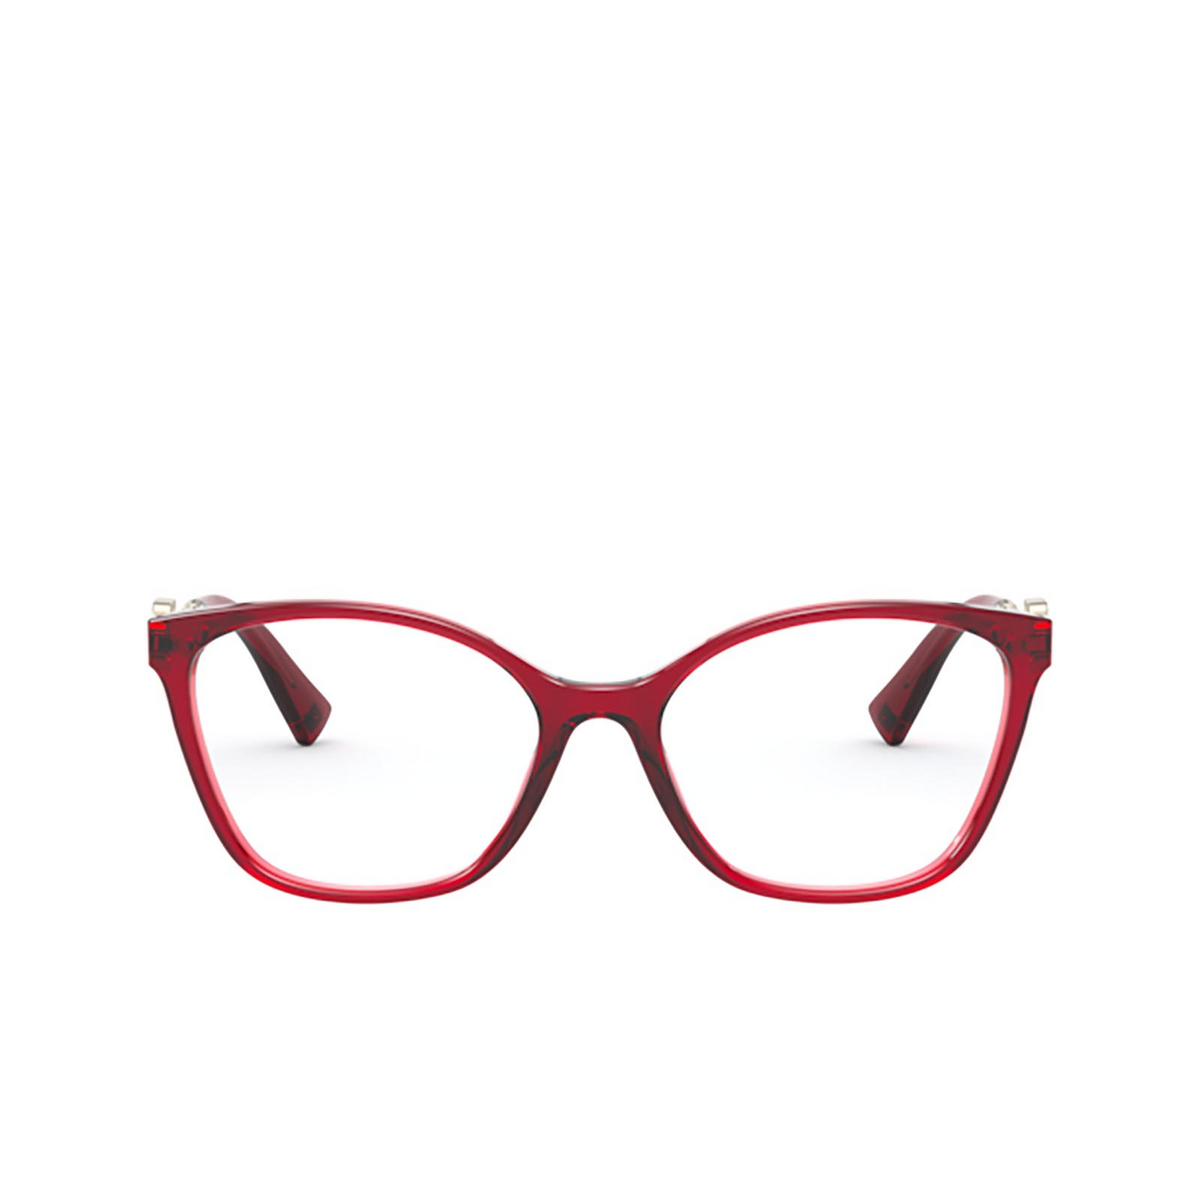 Valentino® Butterfly Eyeglasses: VA3050 color Opal Red 5121 - front view.